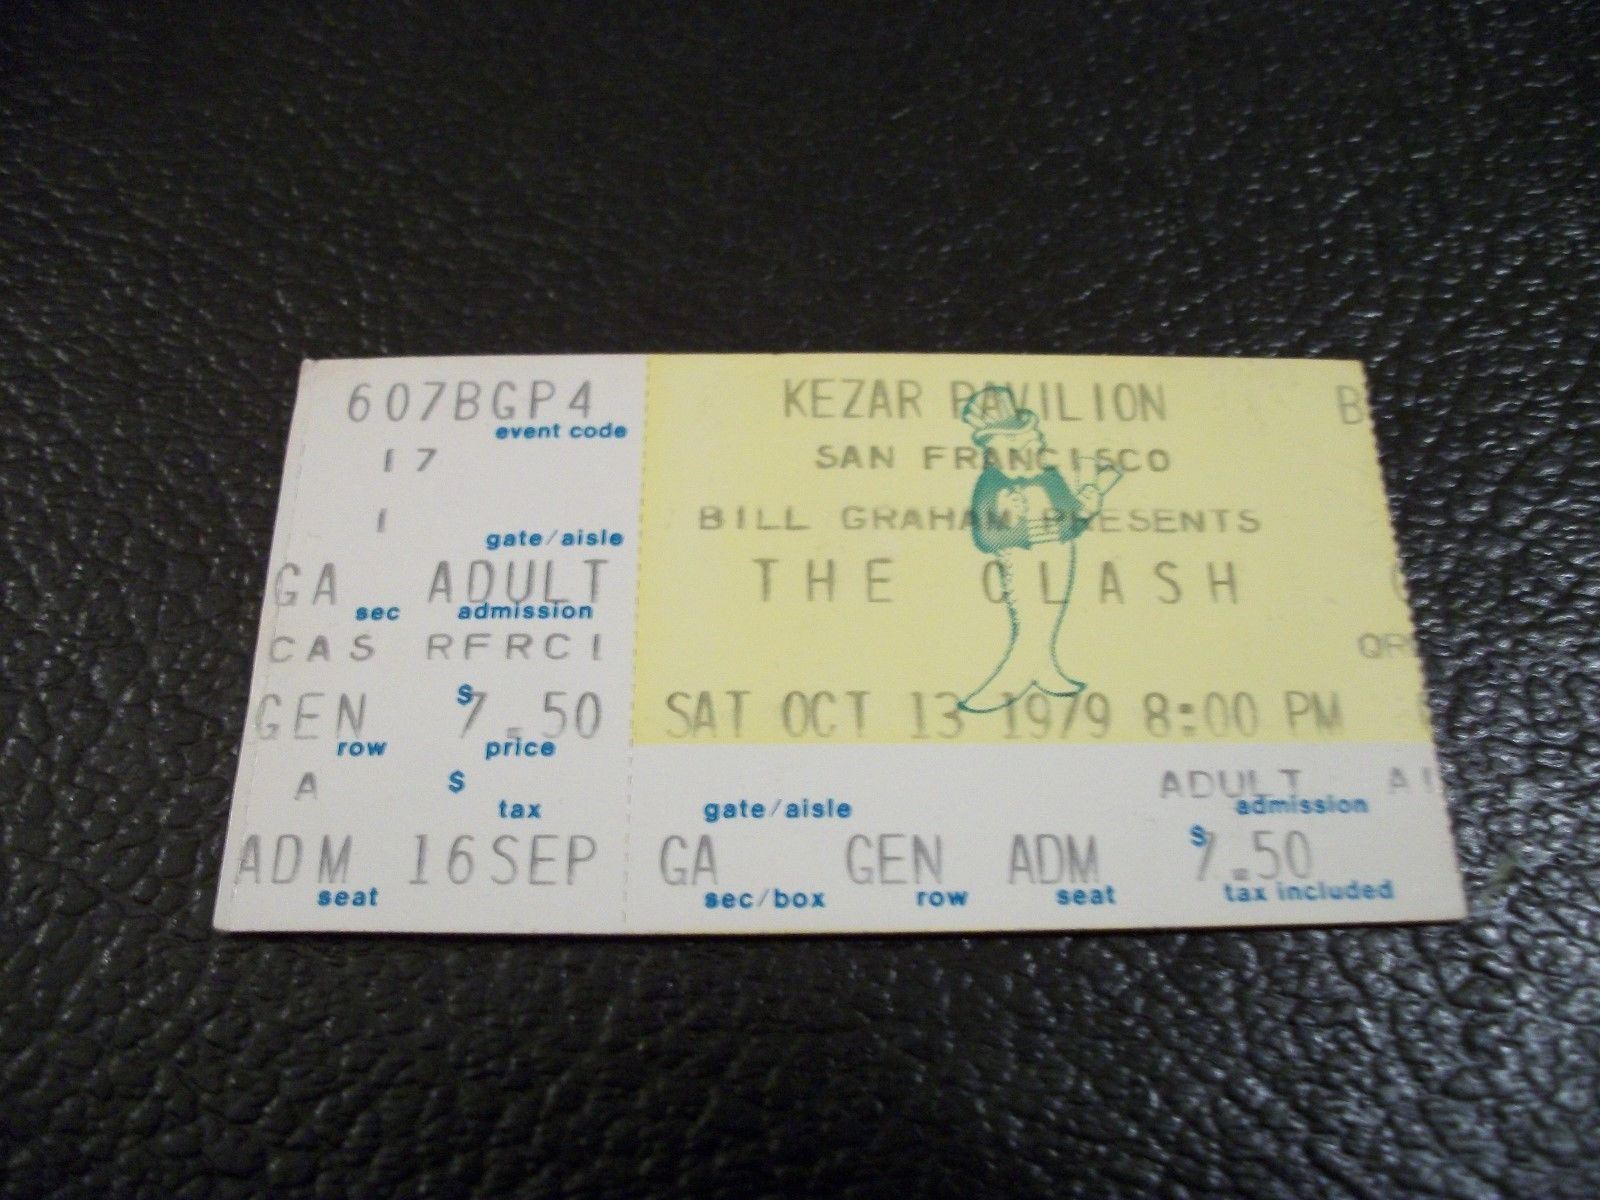 1979 The Clash Kezar Pavillion San Francisco